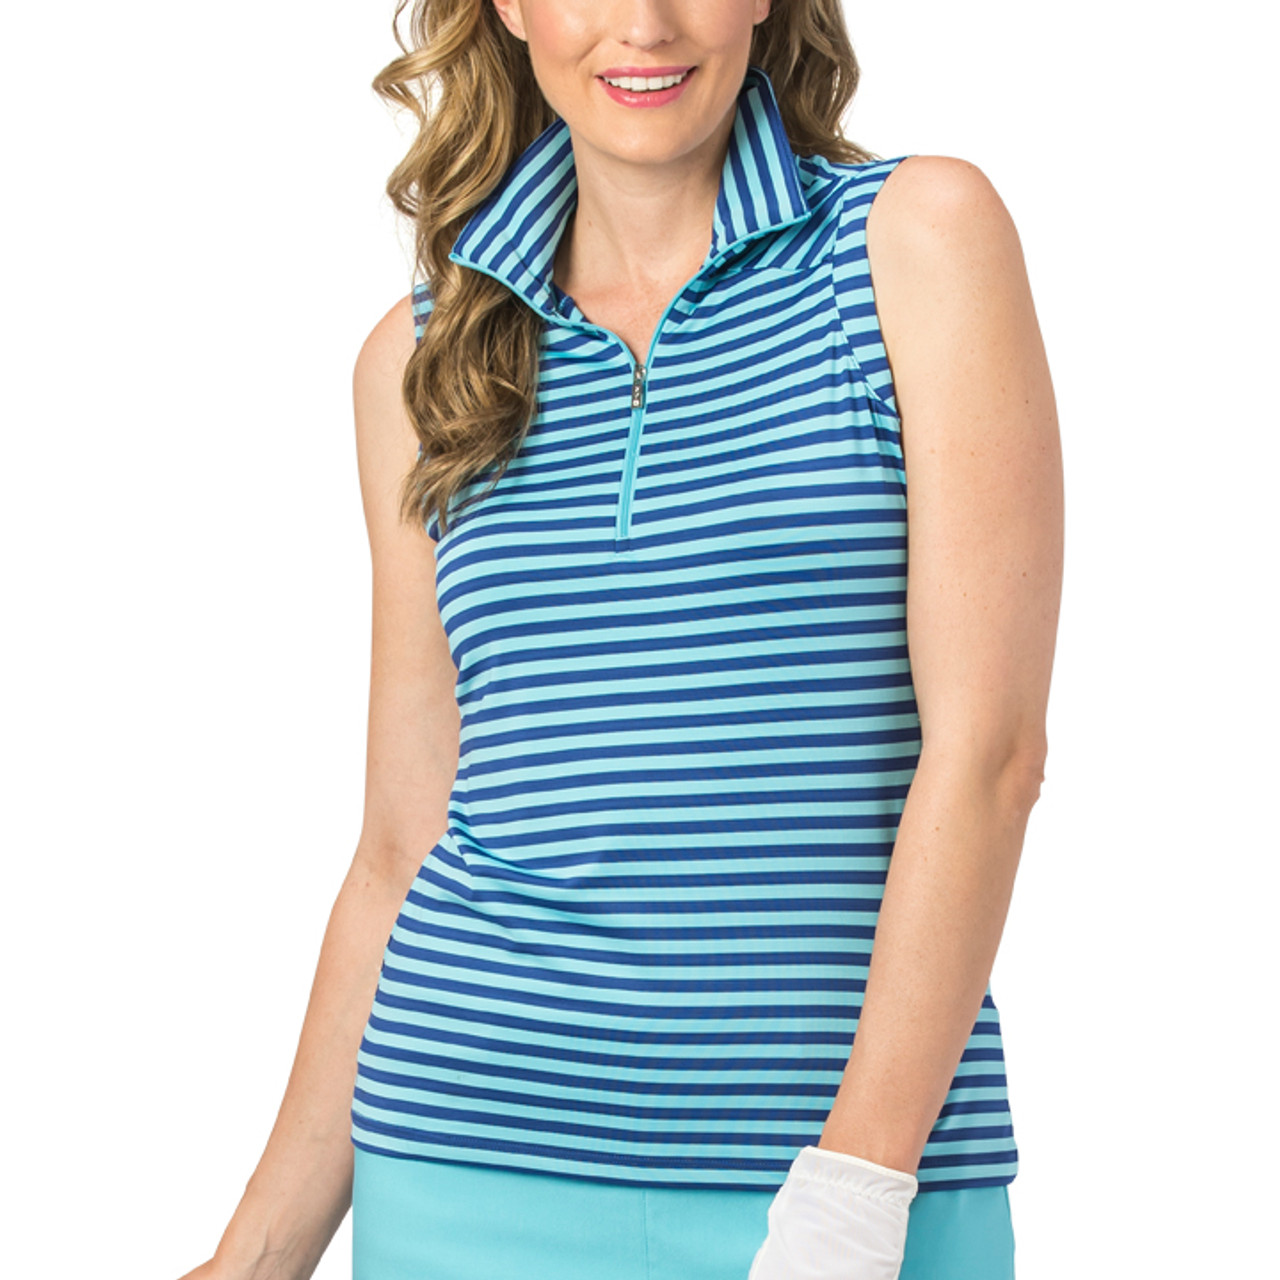 a34aa26a0cf Nancy Lopez Flight Stripe Sleeveless Polo - Twilight Aqaurius